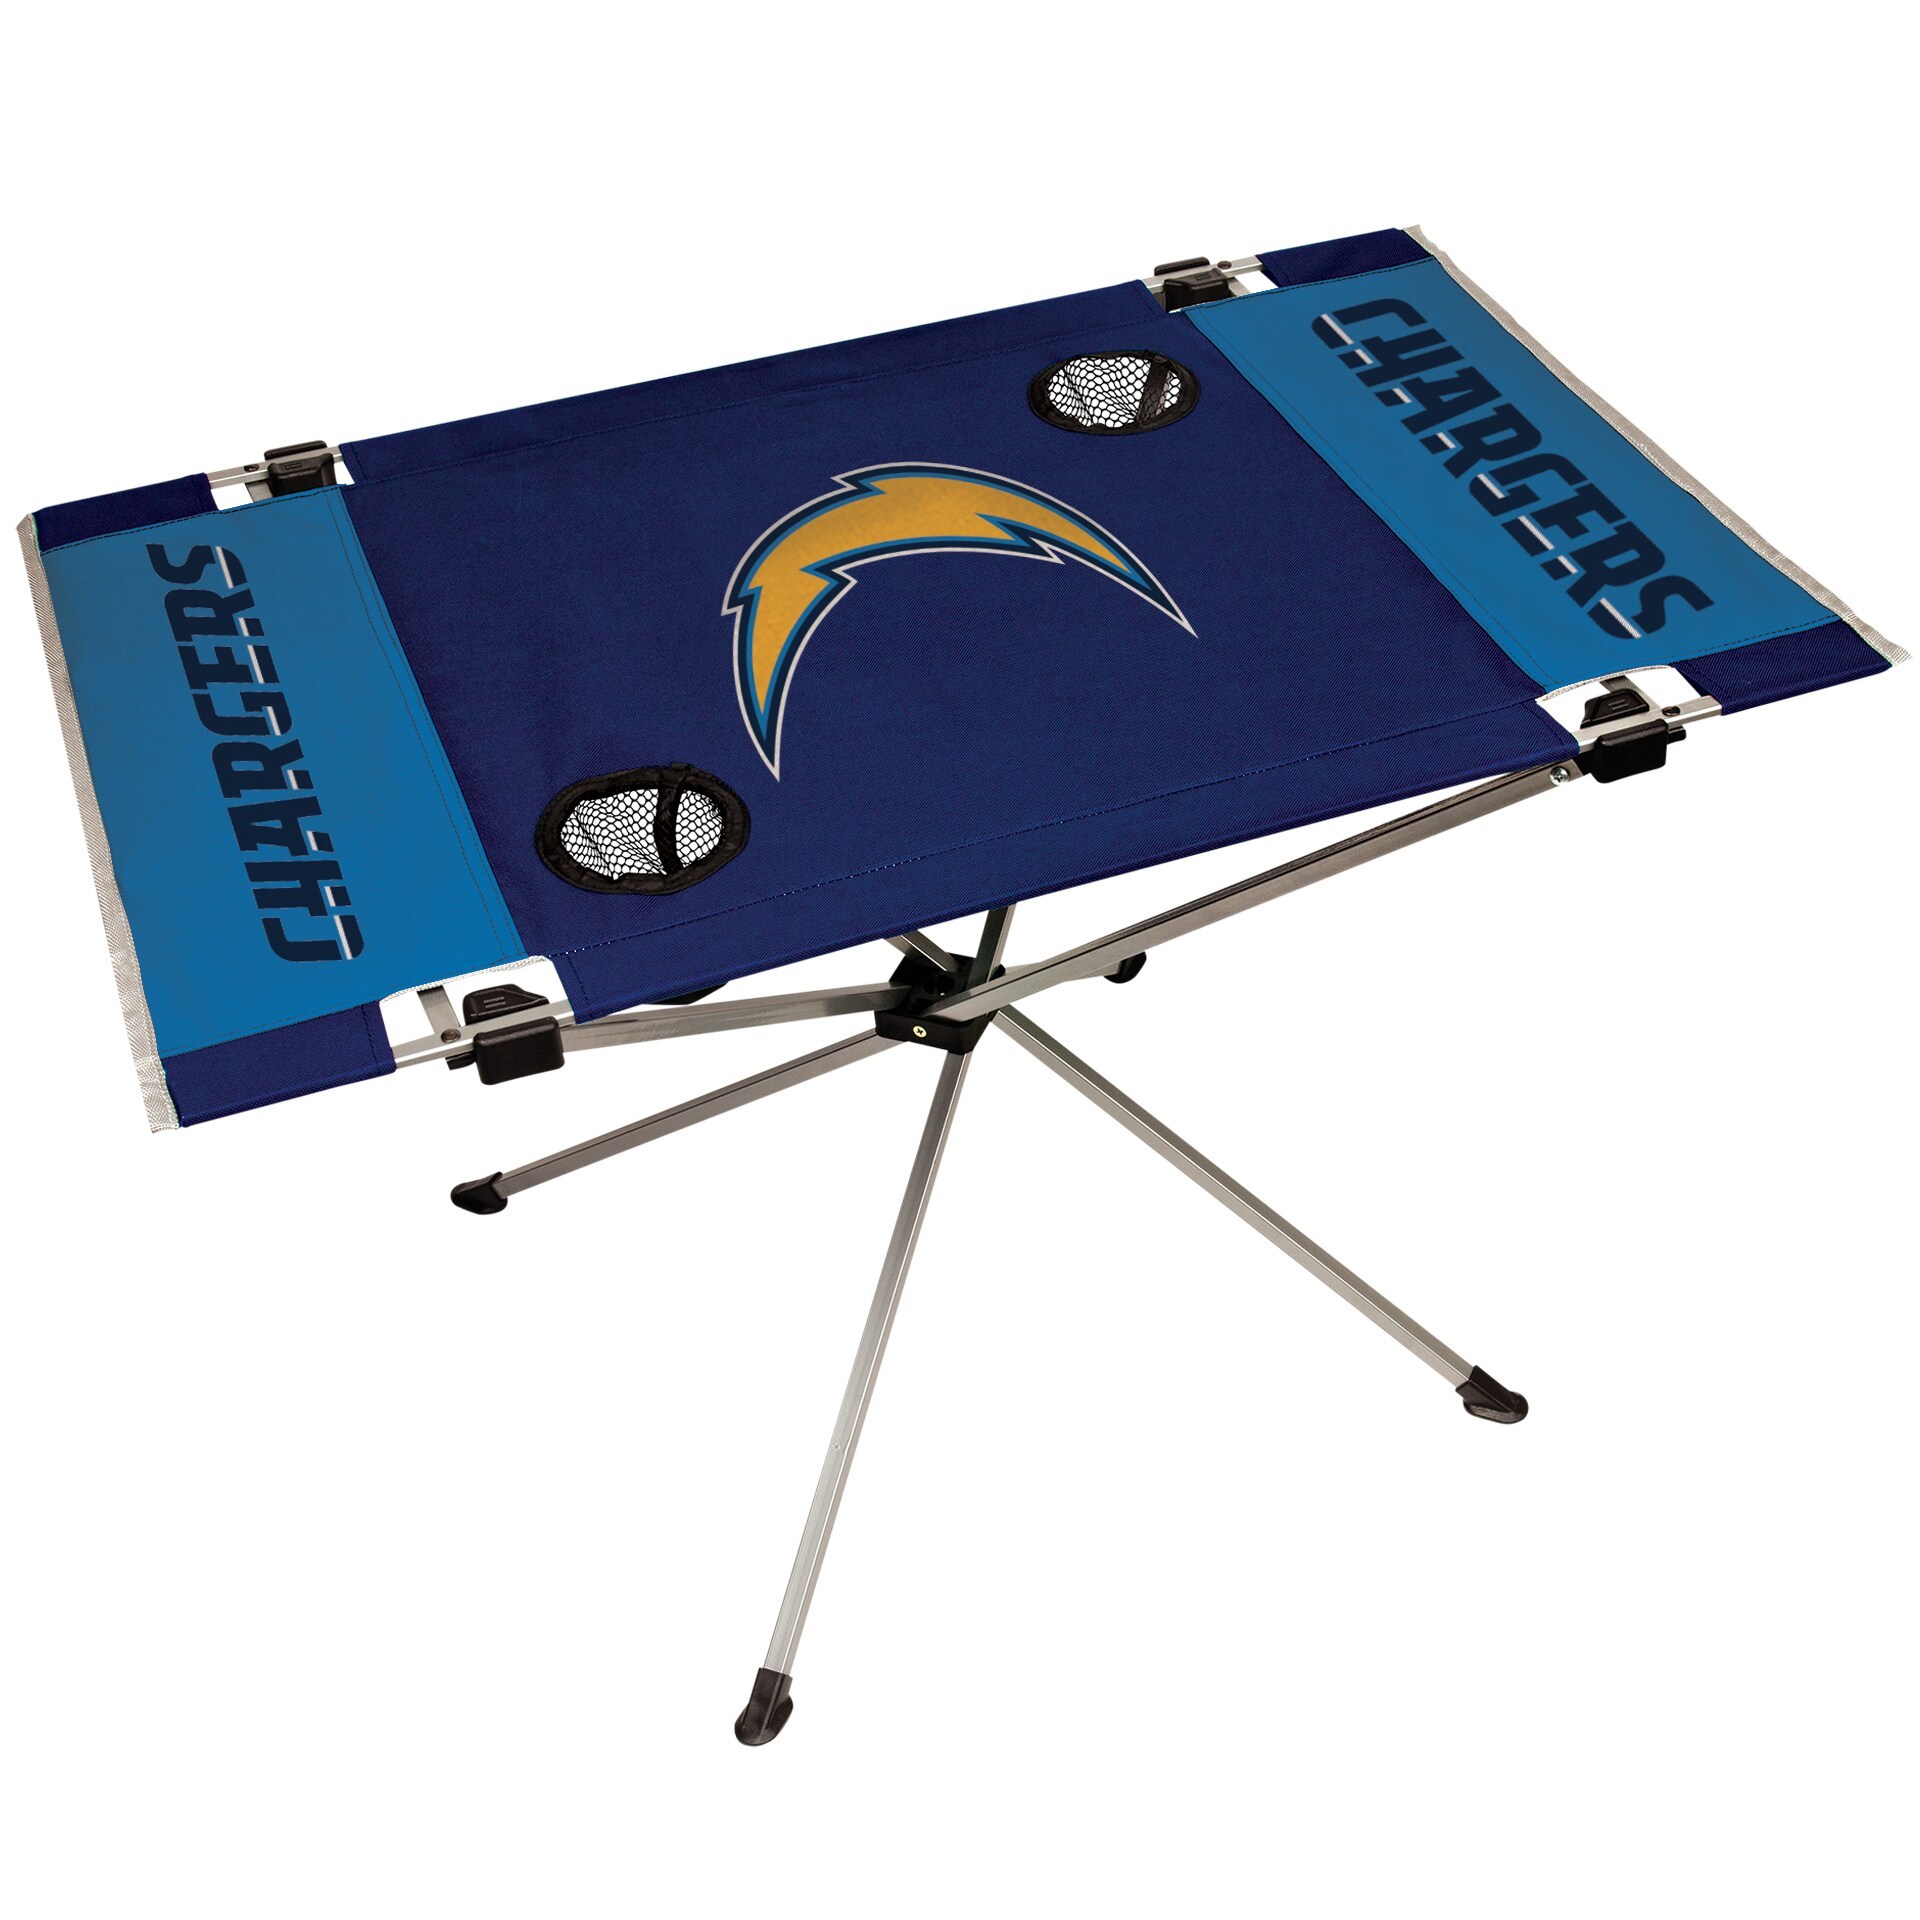 Los Angeles Chargers End Zone Table